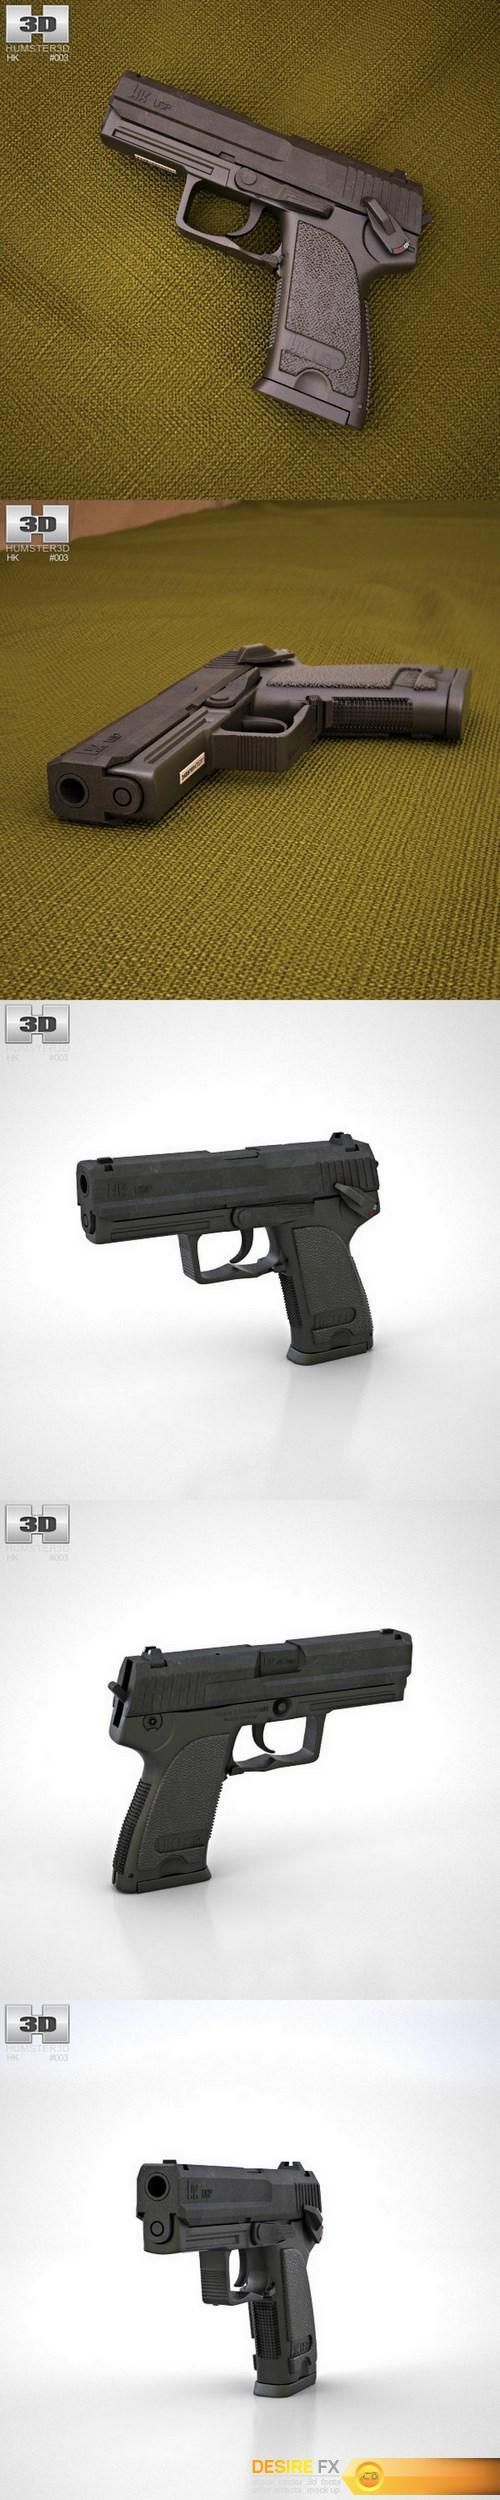 Heckler & Koch USP 3D model  http://www.desirefx.me/heckler-koch-usp-3d-model/